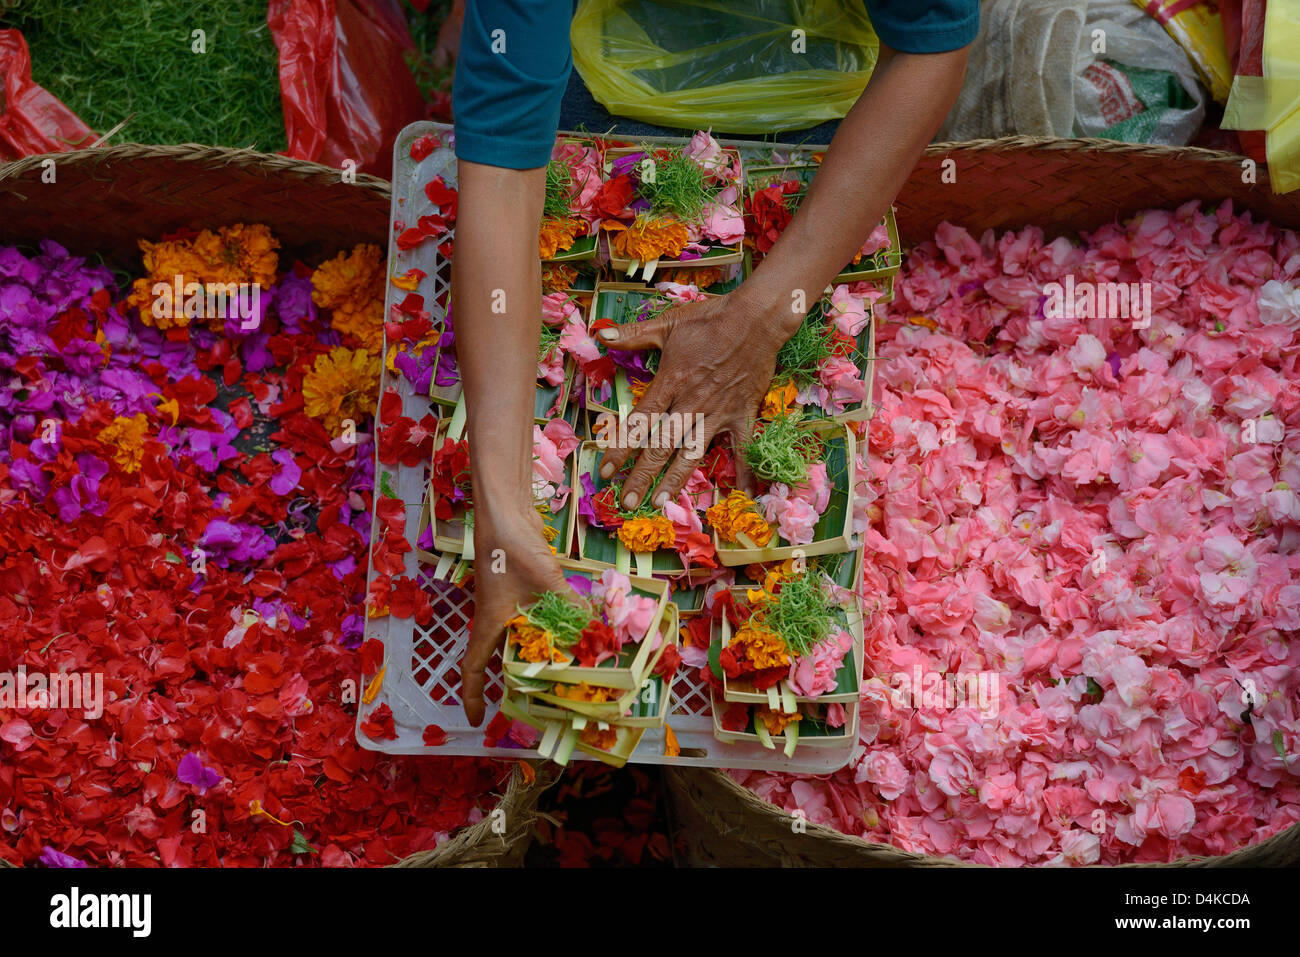 Indonesia, Bali, Ubud, selling flowers at the market for offerings - Stock Image